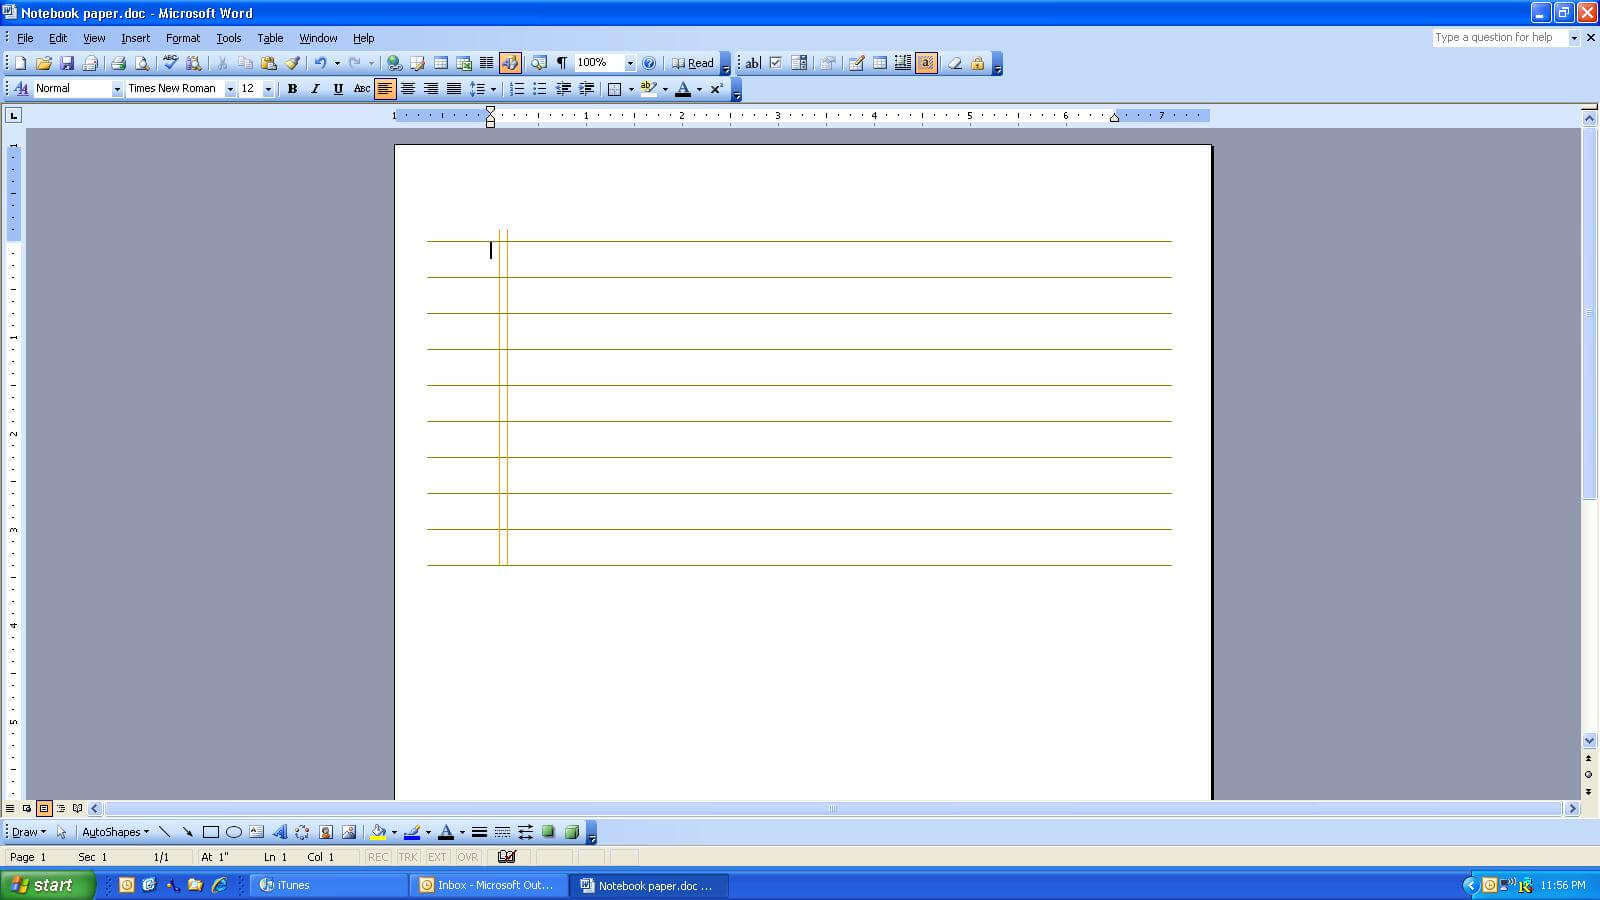 Microsoft Word Notebook Regarding Notebook Paper Template For Word 2010